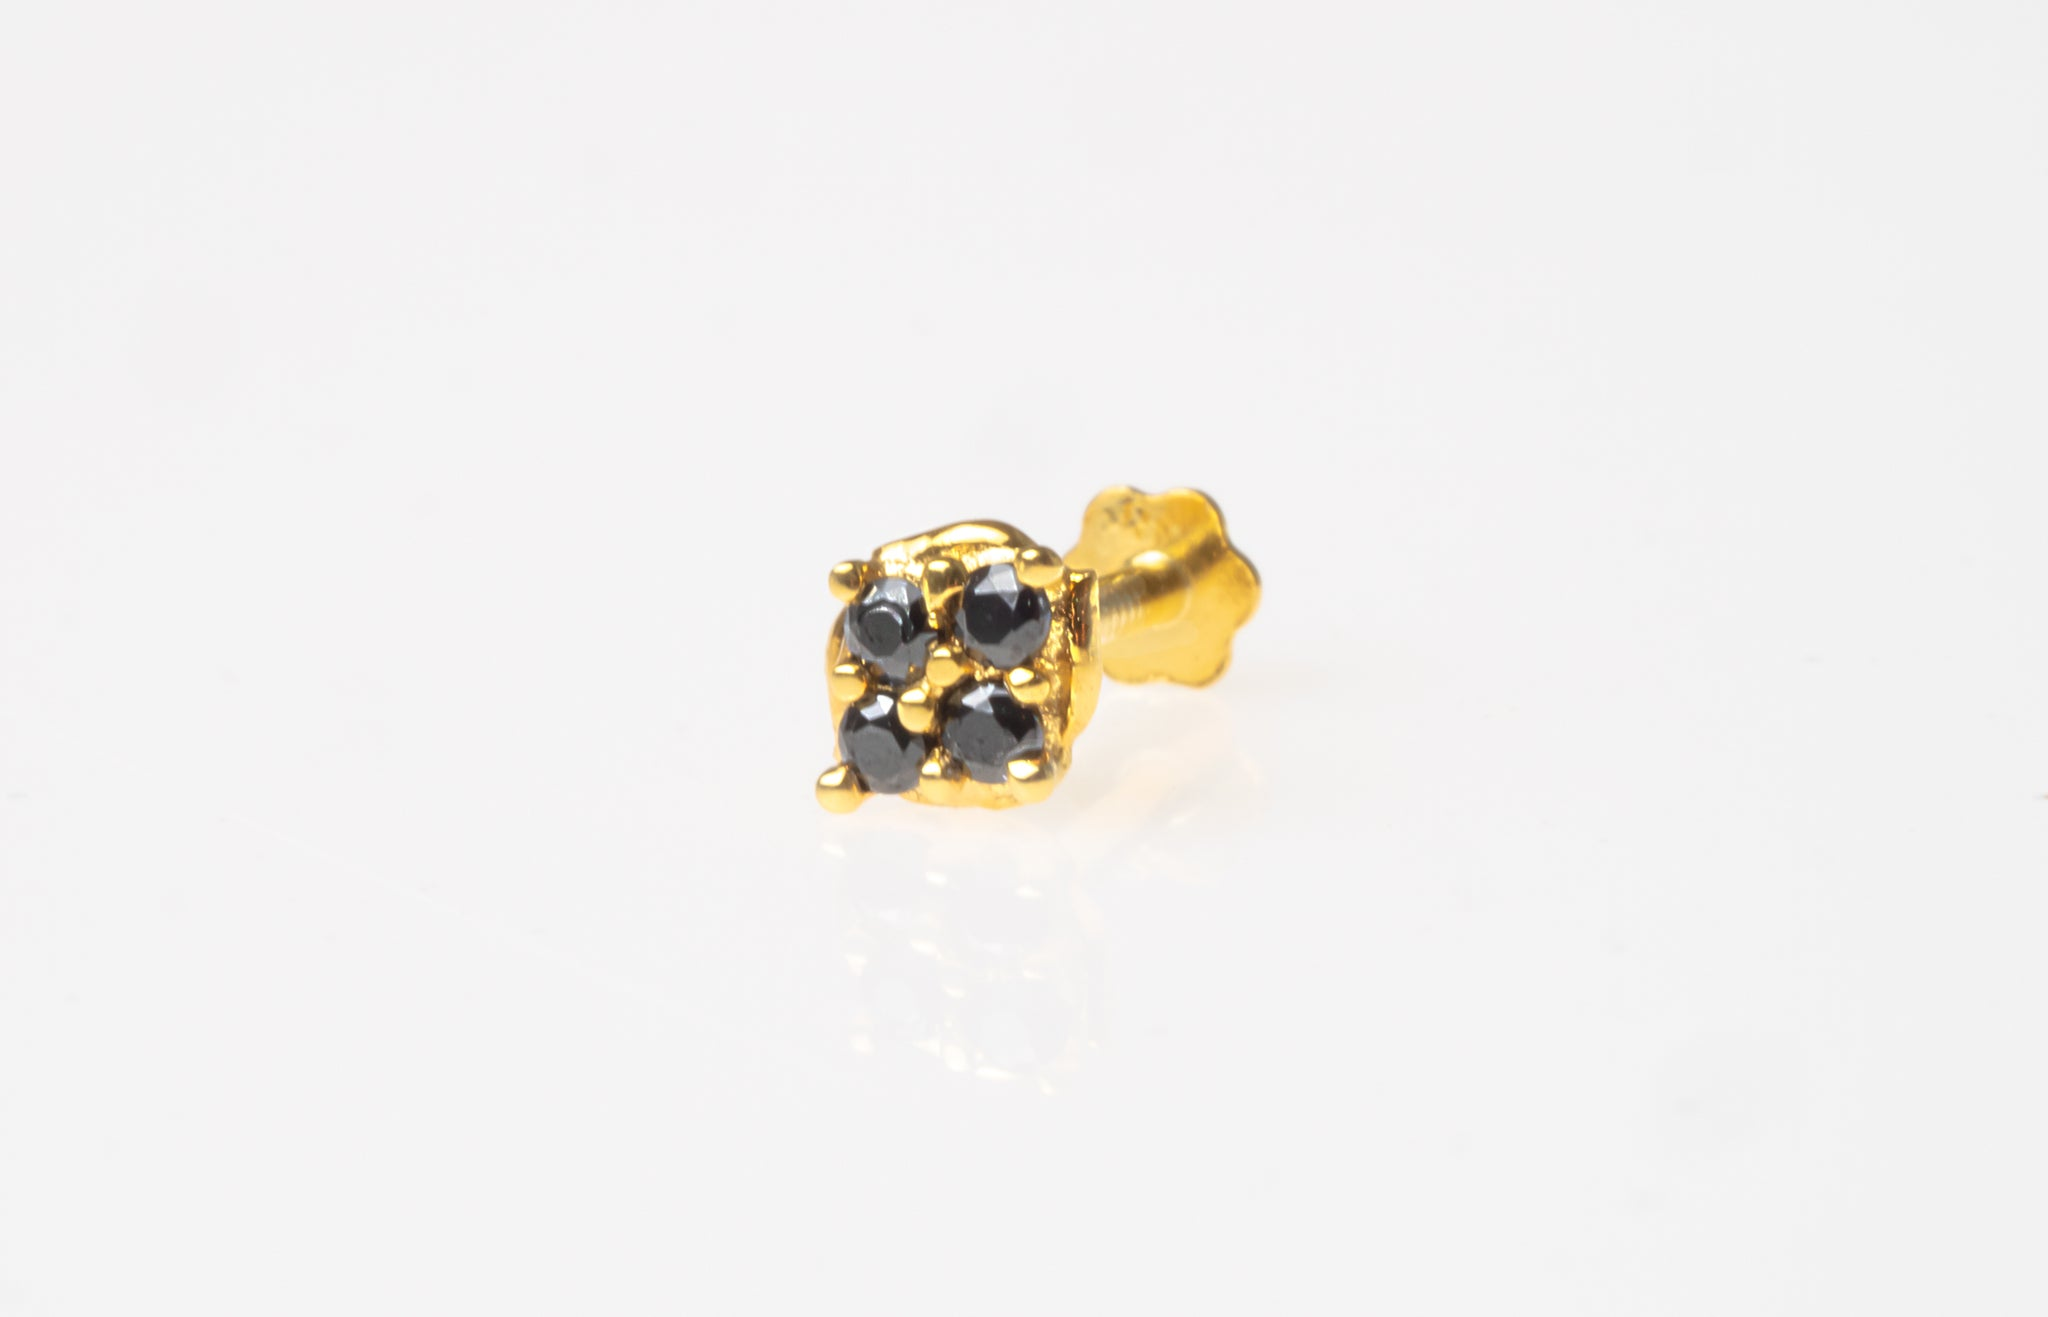 18ct Yellow Gold Screw Back Nose Stud set with 4 Black Cubic Zirconias NIP-5-580d